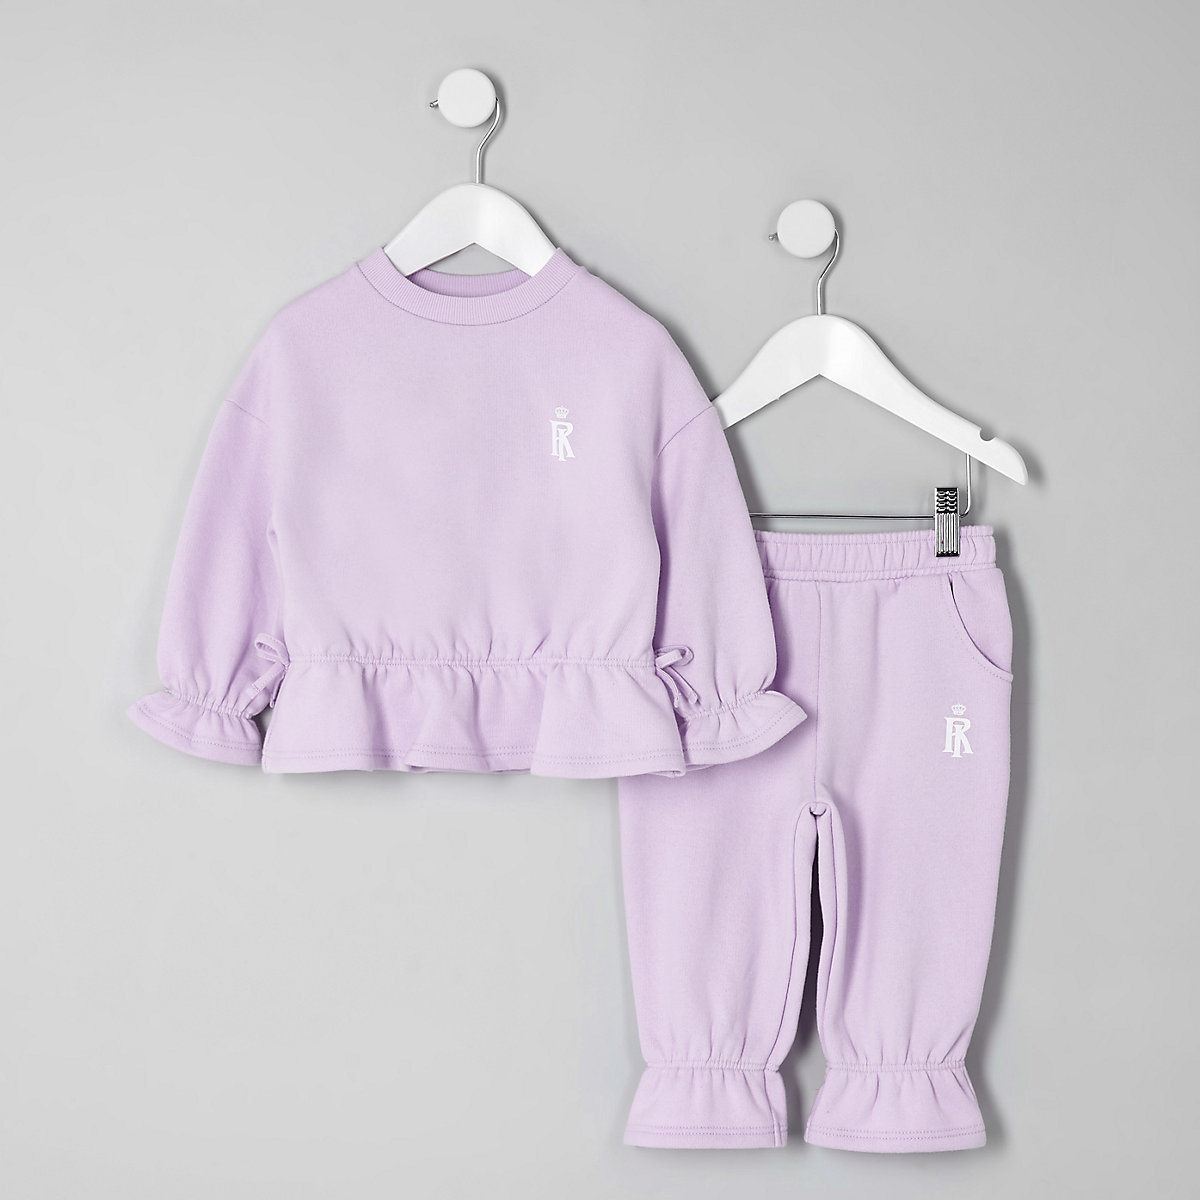 Mini girls purple frill sweatshirt outfit